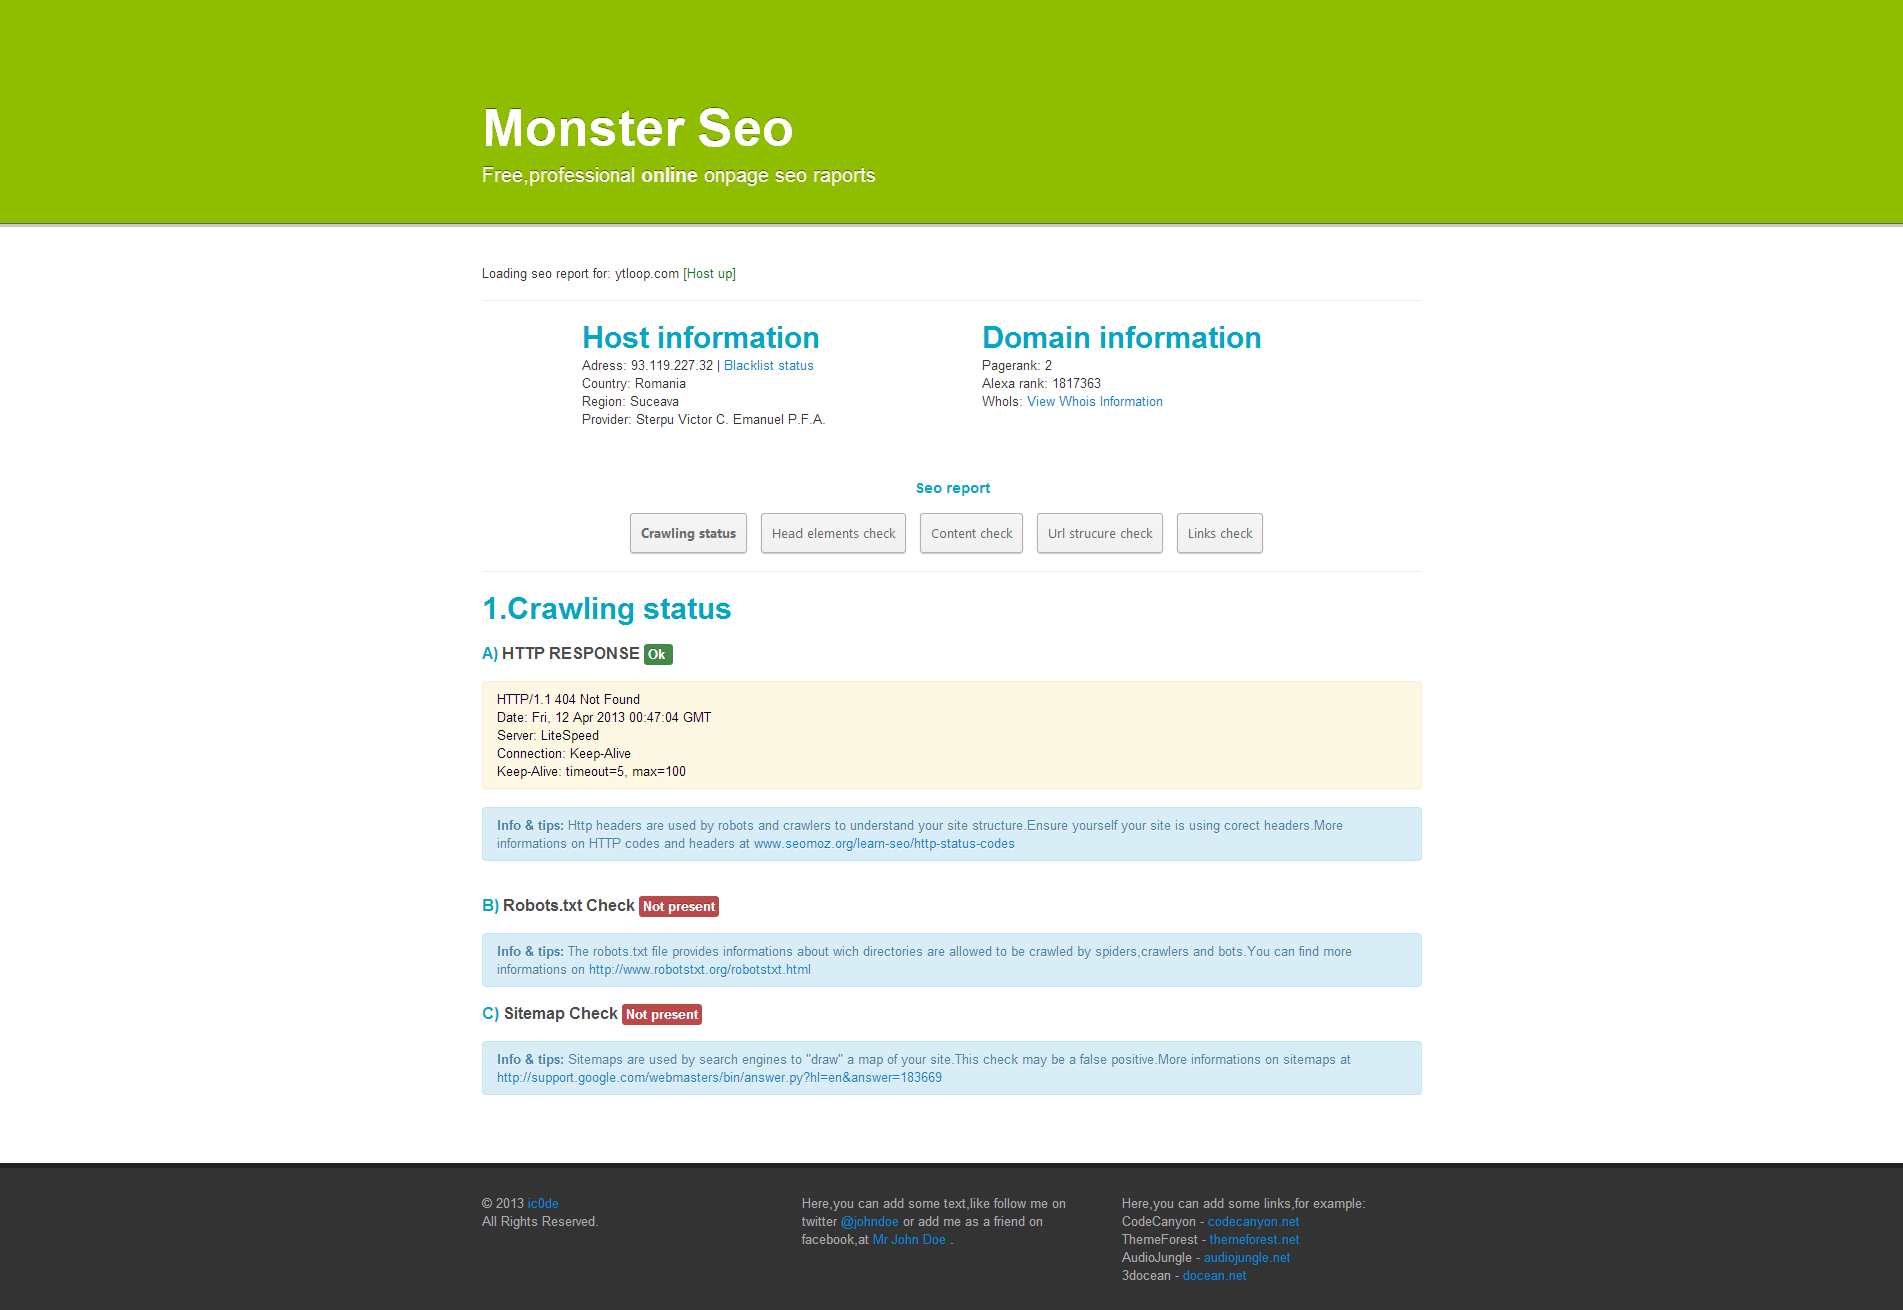 SeoMonster - OnPage SEO Raporting Script - On the first tab,the user can see his crawling report,including http code returned,sitemap check and robots.txt check.